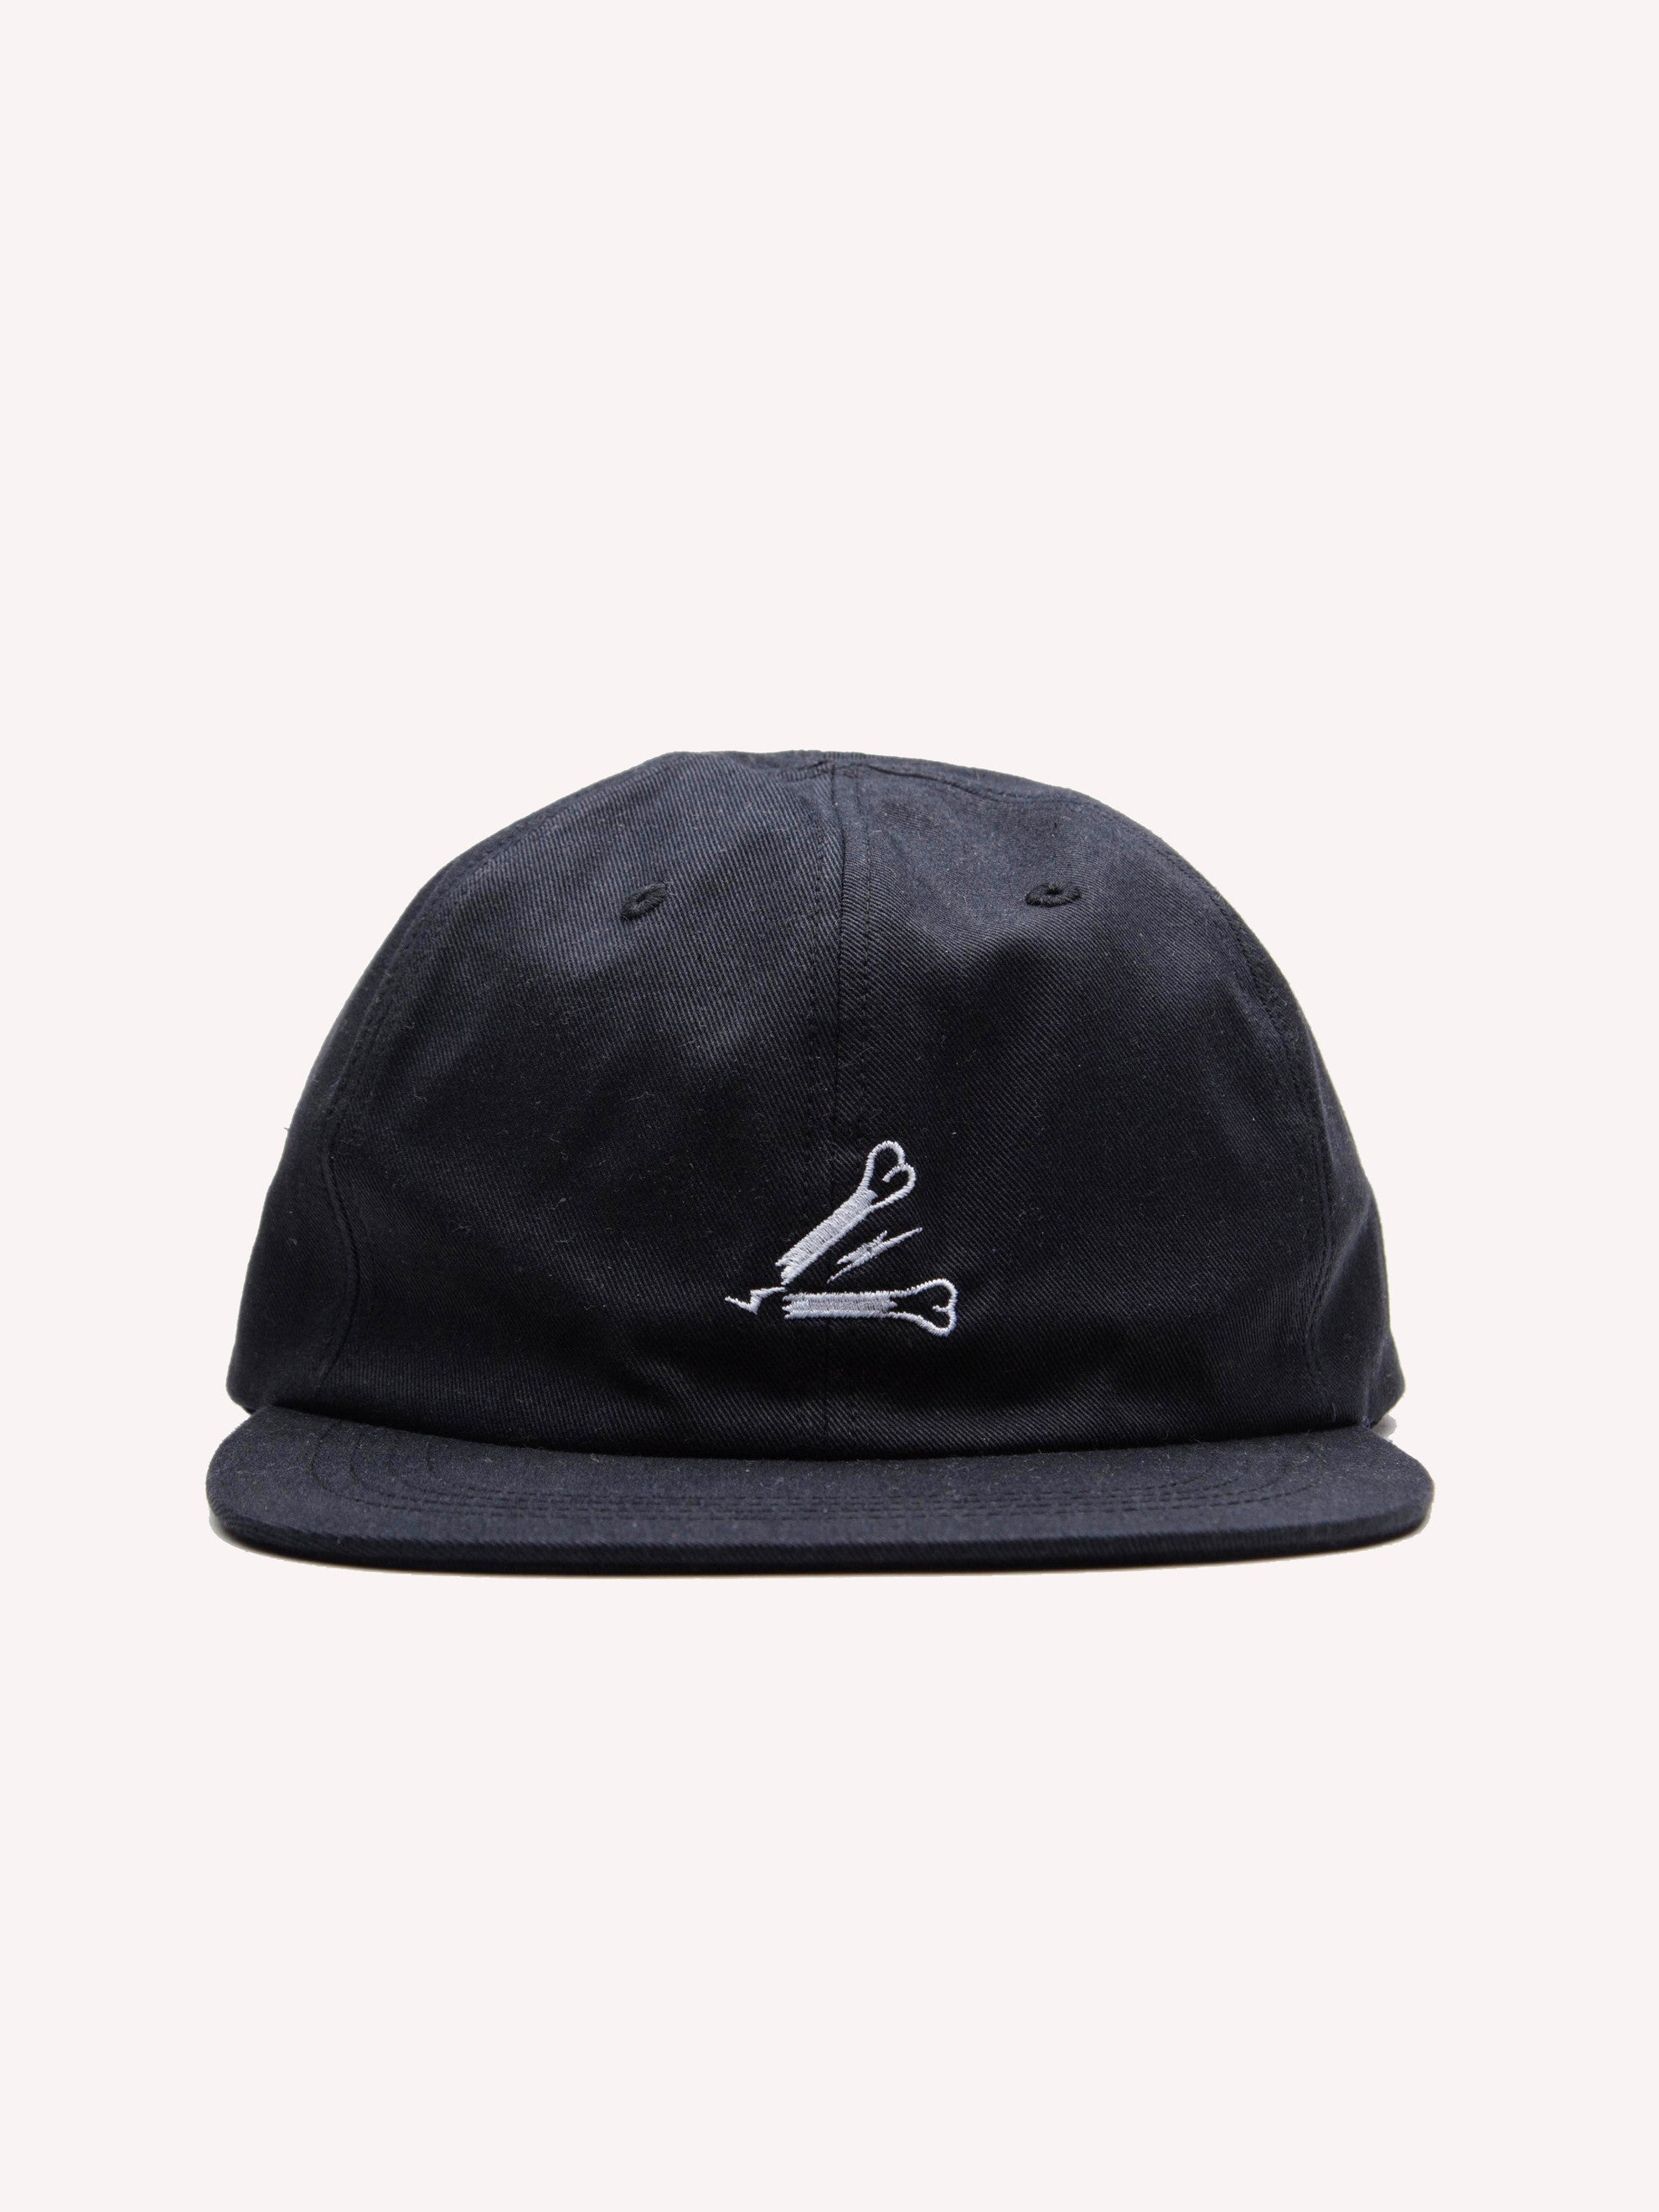 Black T-6 Cap (Cotton Chino) 1